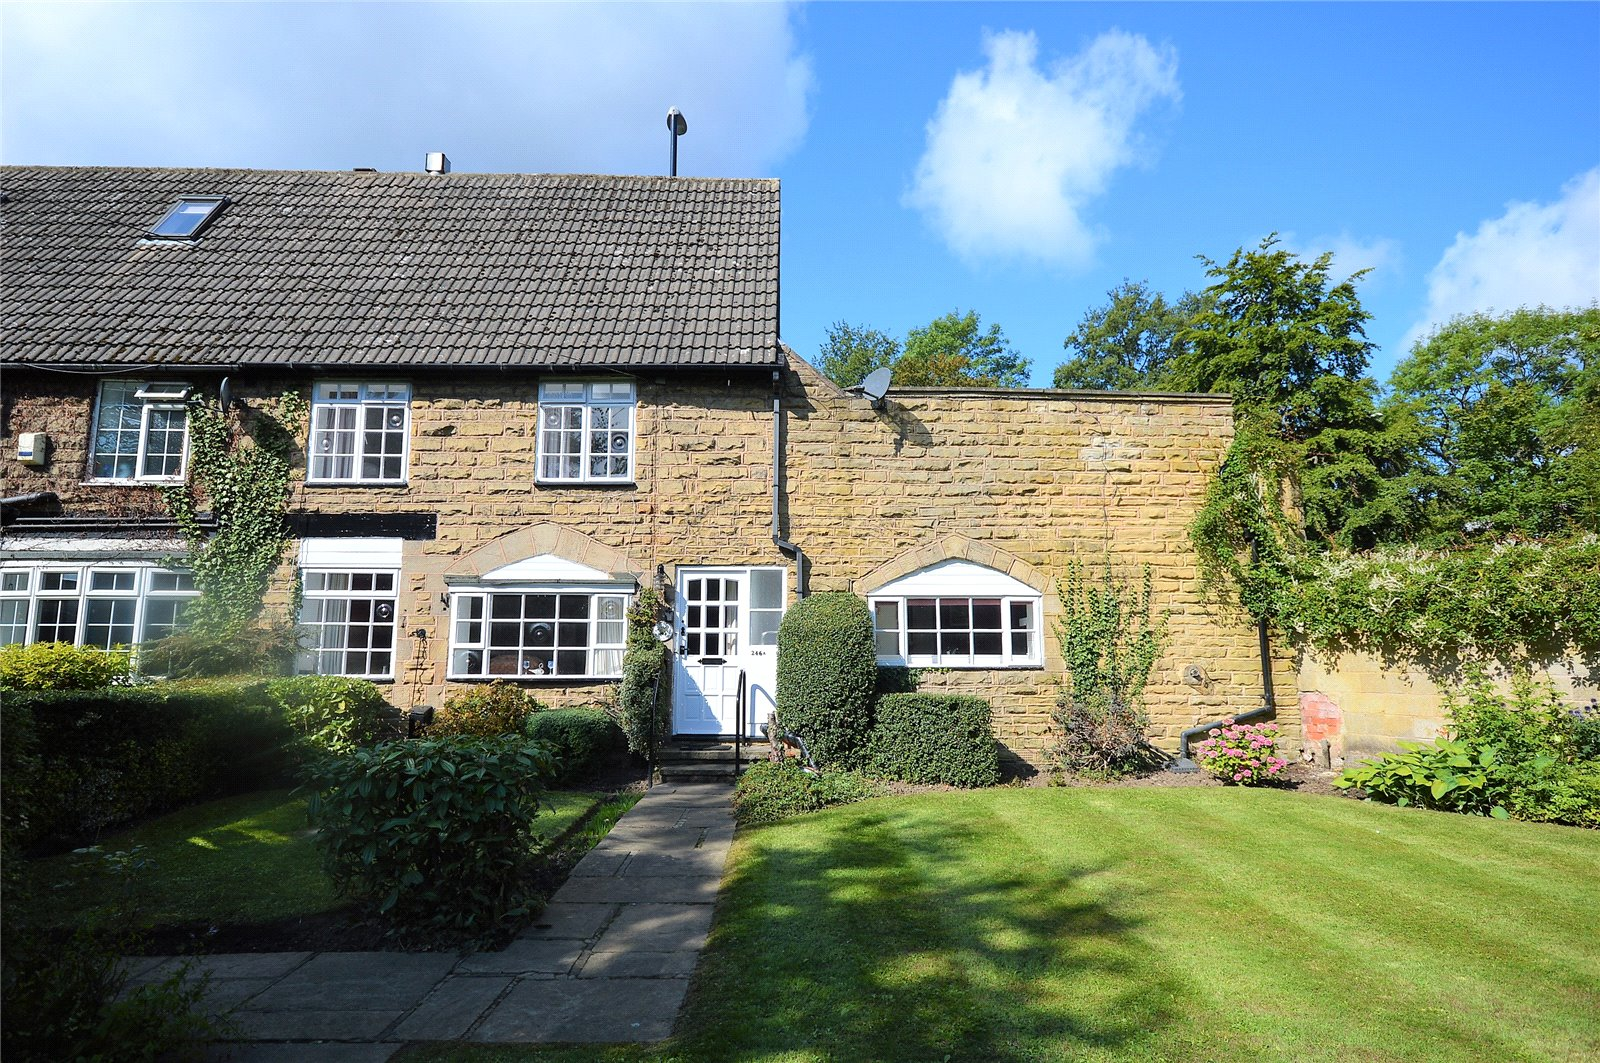 property for sale in Leeds, exterior of sottage style house